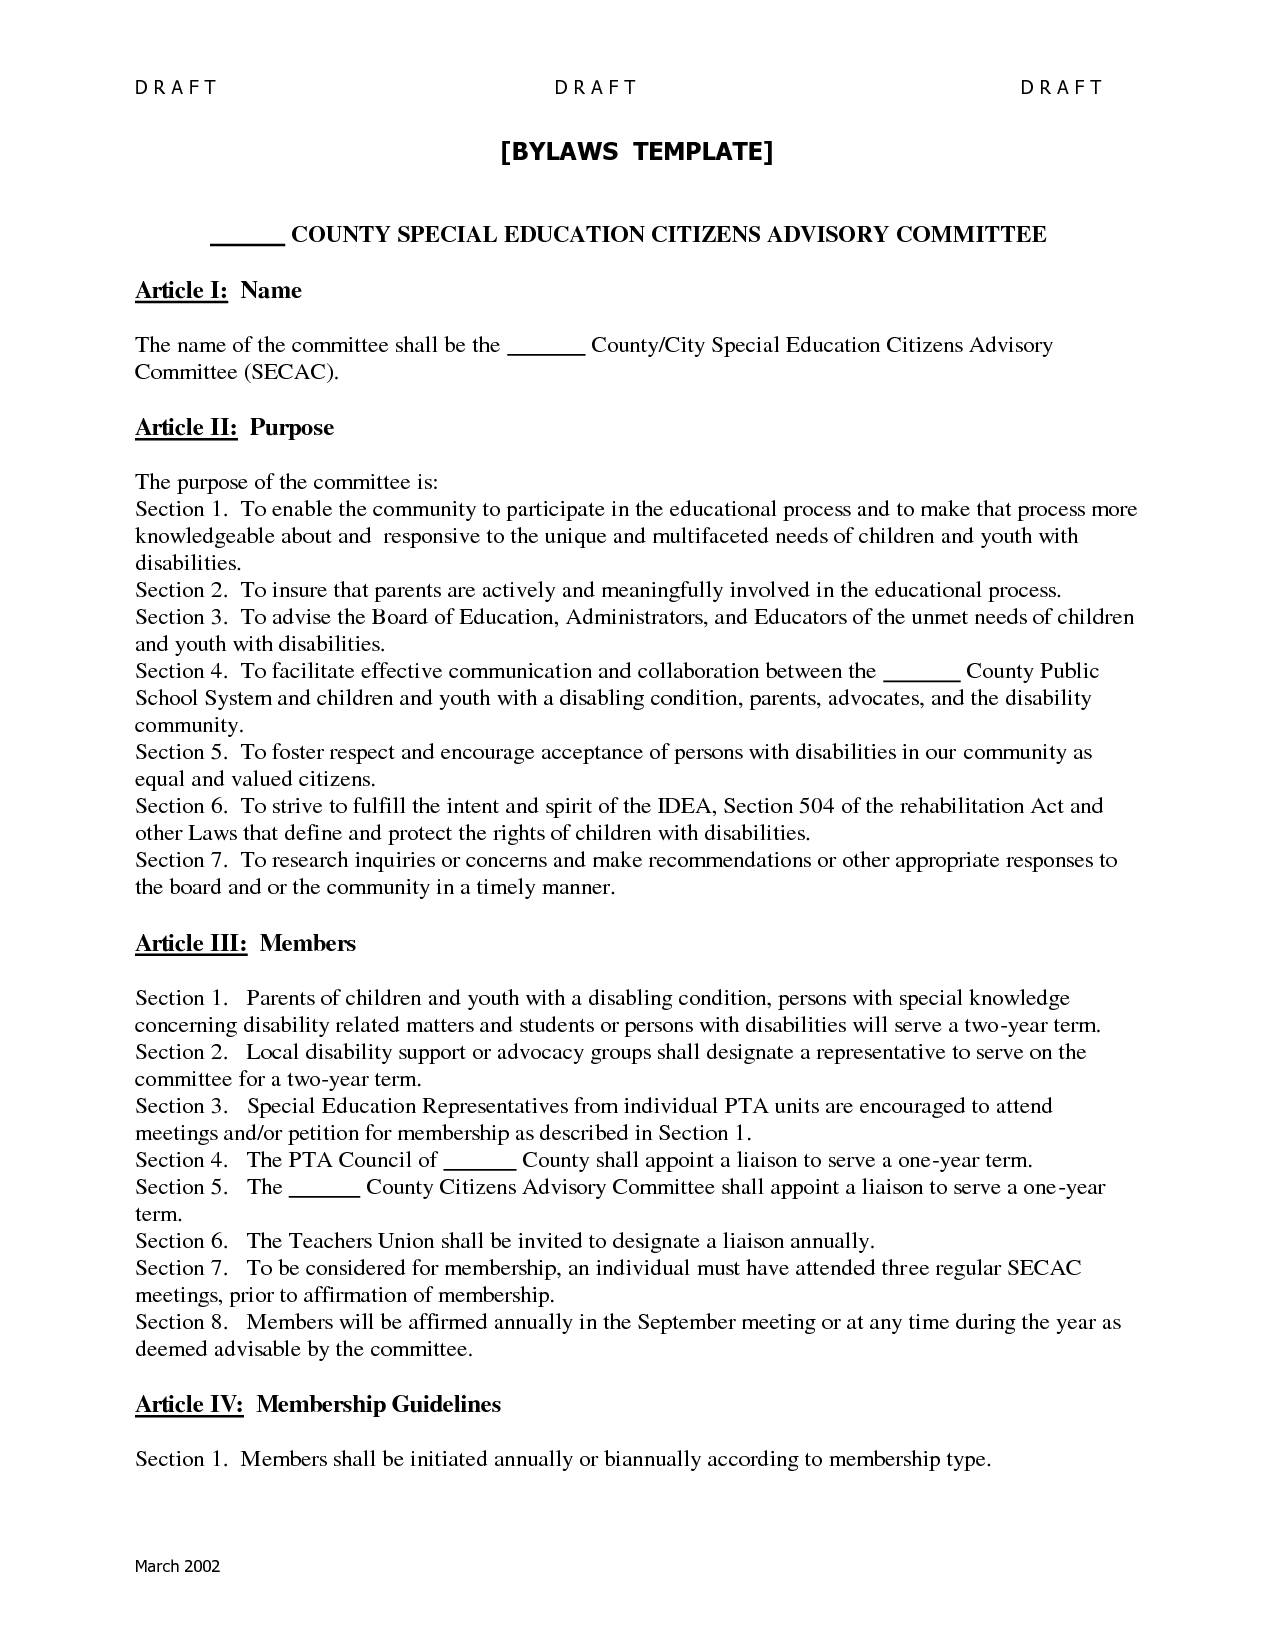 Non Profit Bylaw Template